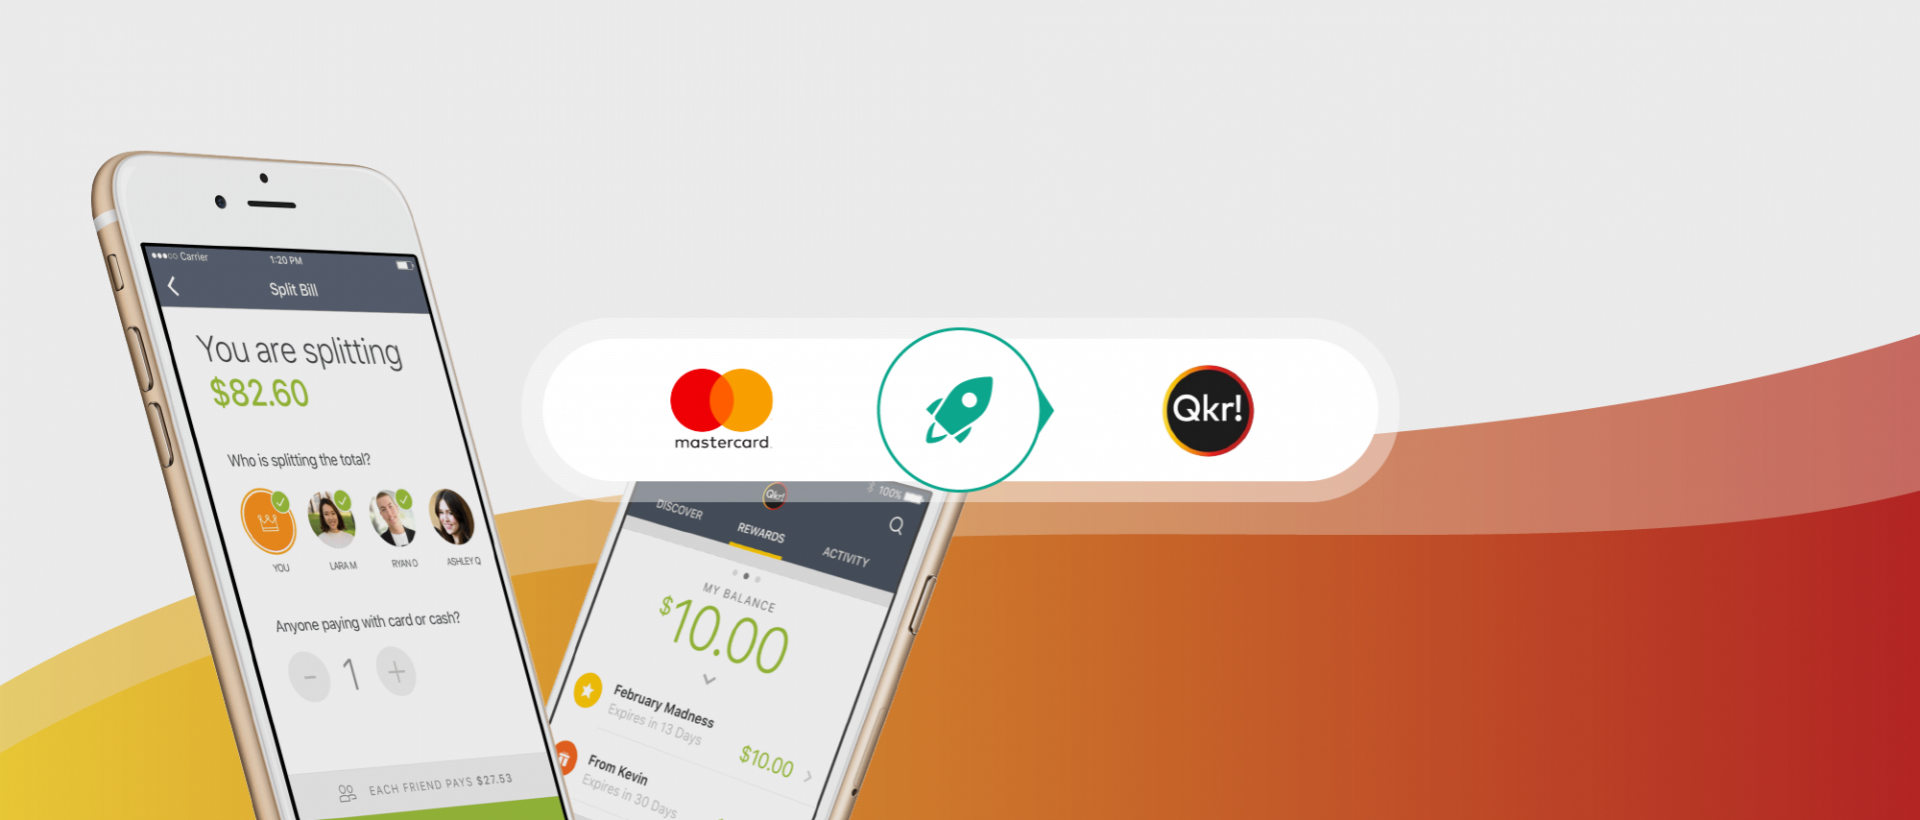 MasterCard is staying on top of the mobile payment game with Qkr by Masterpass